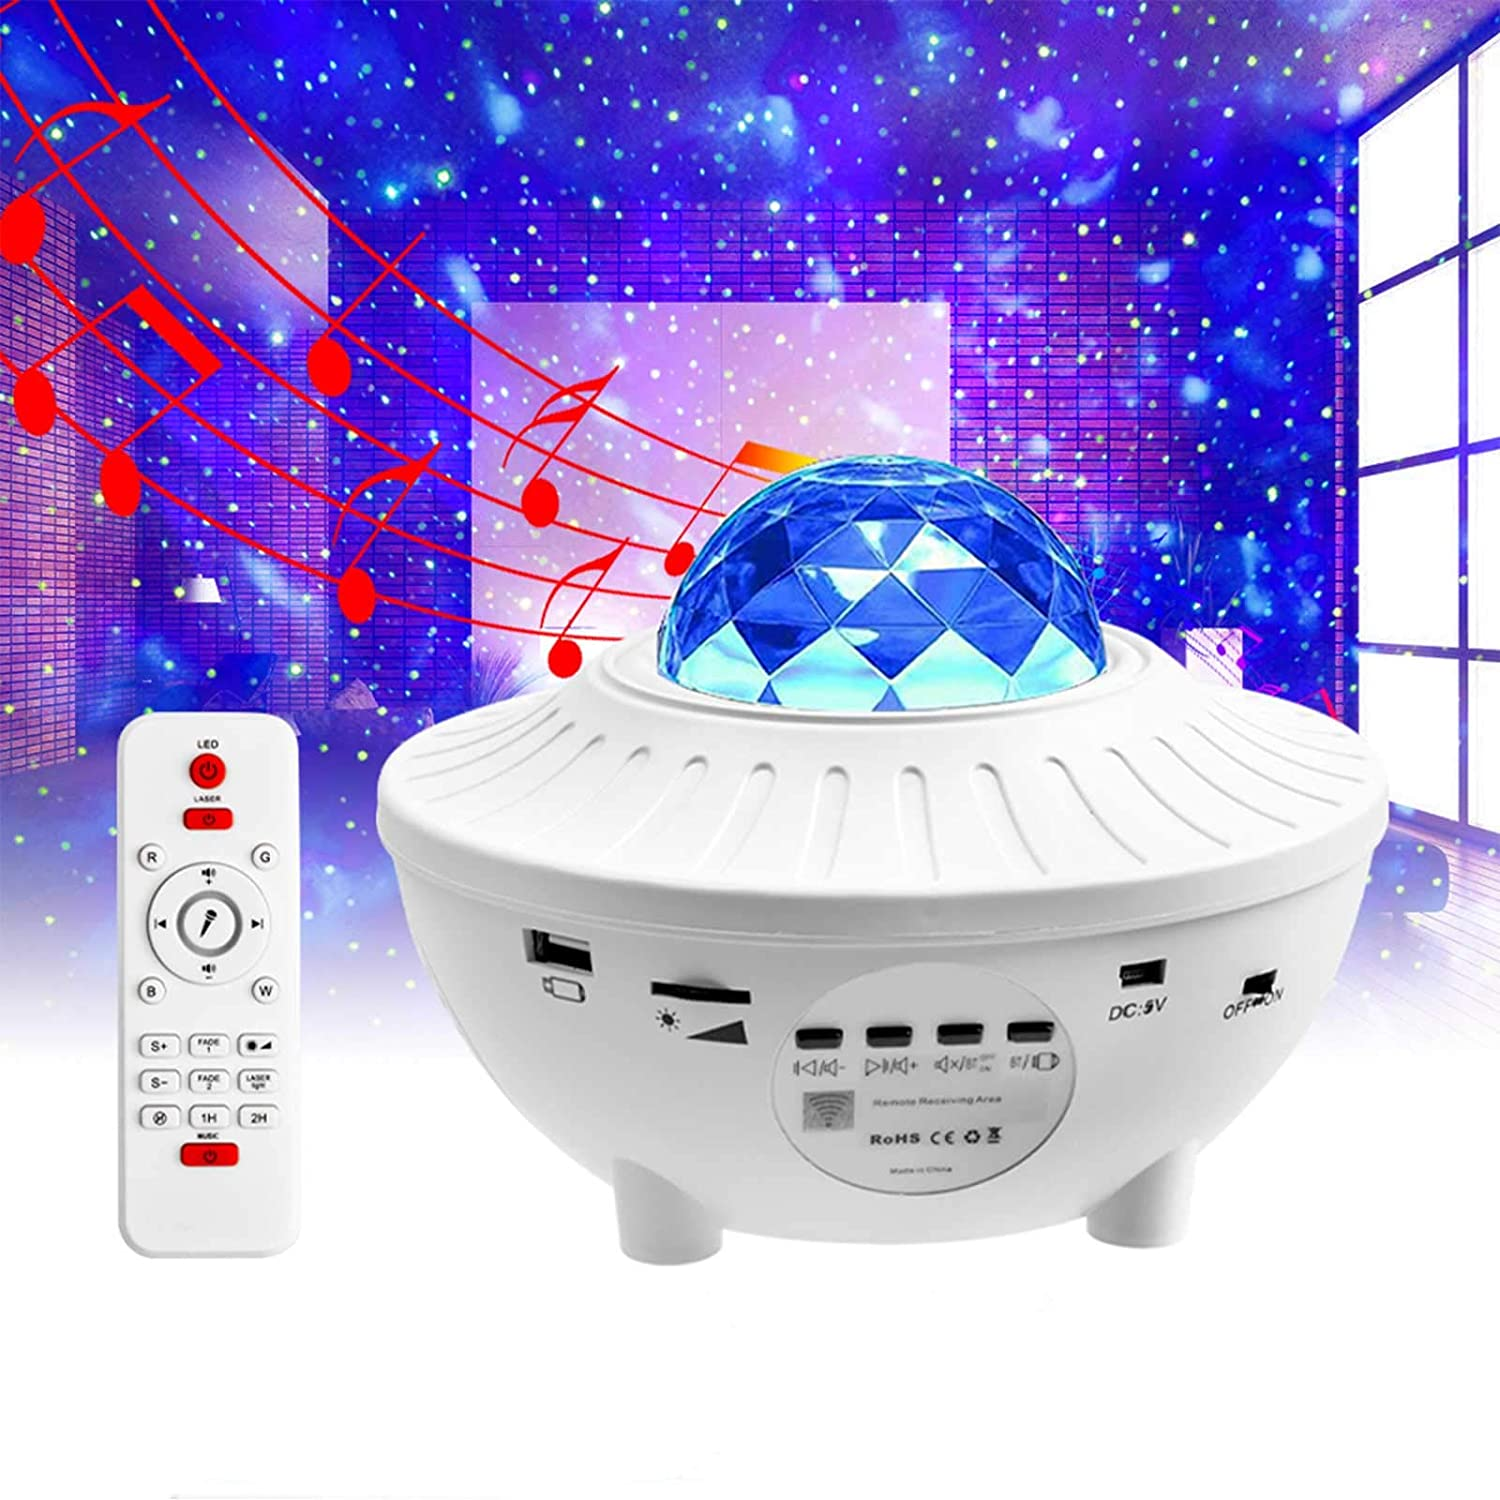 Pinshion Star Projector Light, Bluetooth Speaker Voice Control Christmas Projector Ligh 3-in-1 Sky Twilight Star Ocean Wave Projection LED Night Projector Light for Bedroom Holidays Party Home(White)